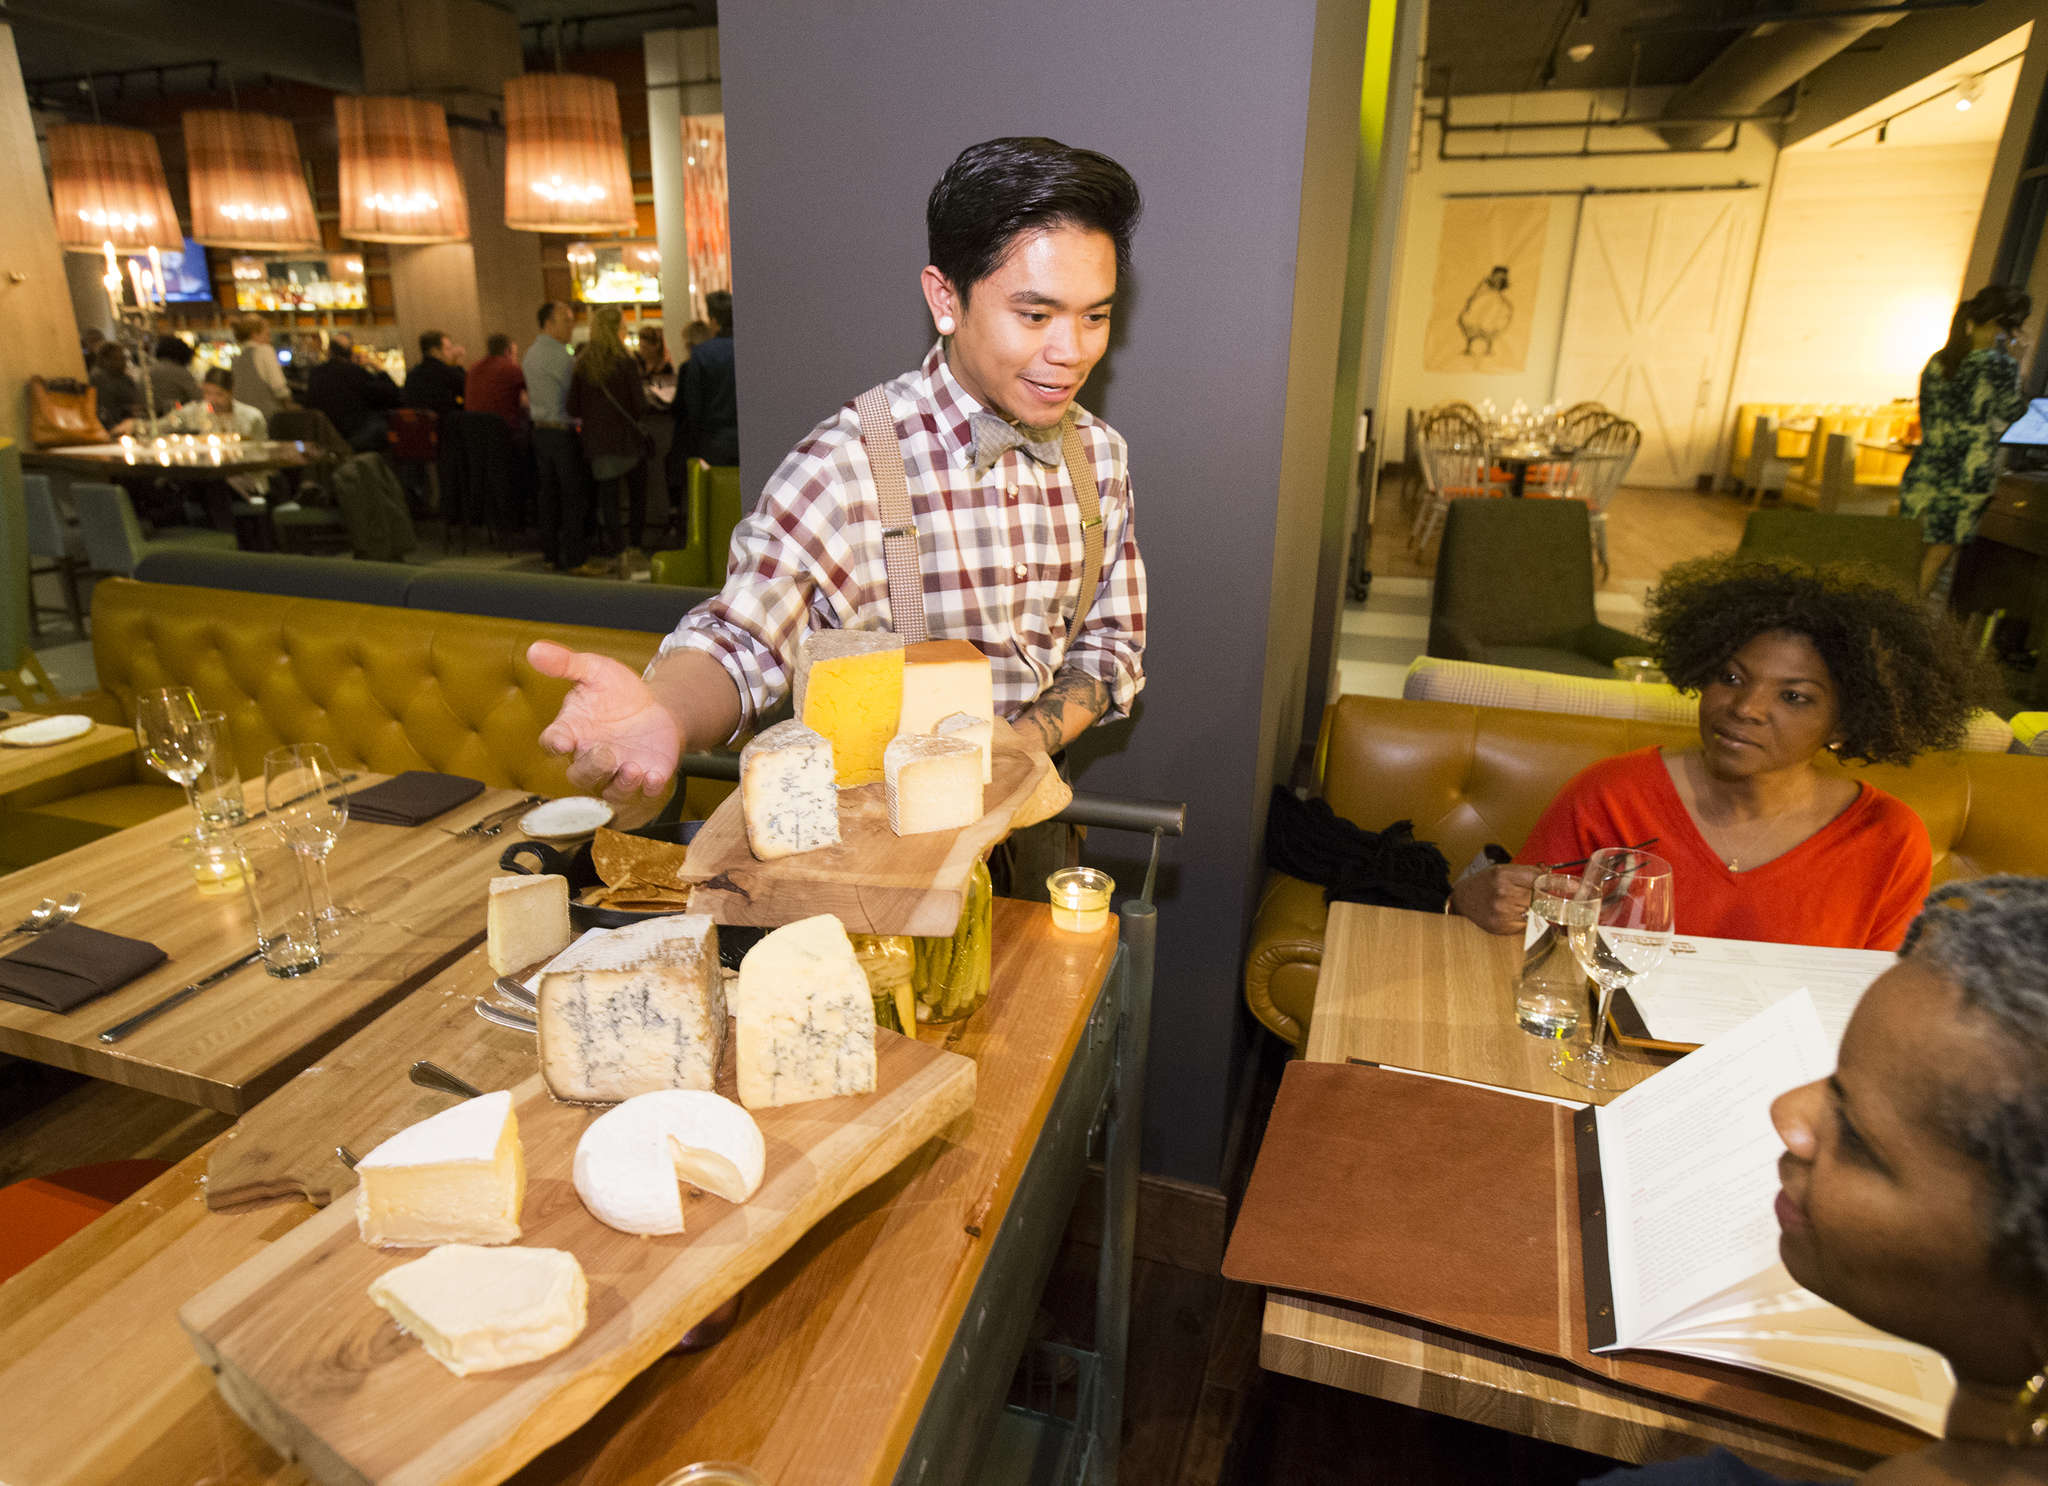 Jeffrey Rubio pushes a cheese cart at Urban Farmer.